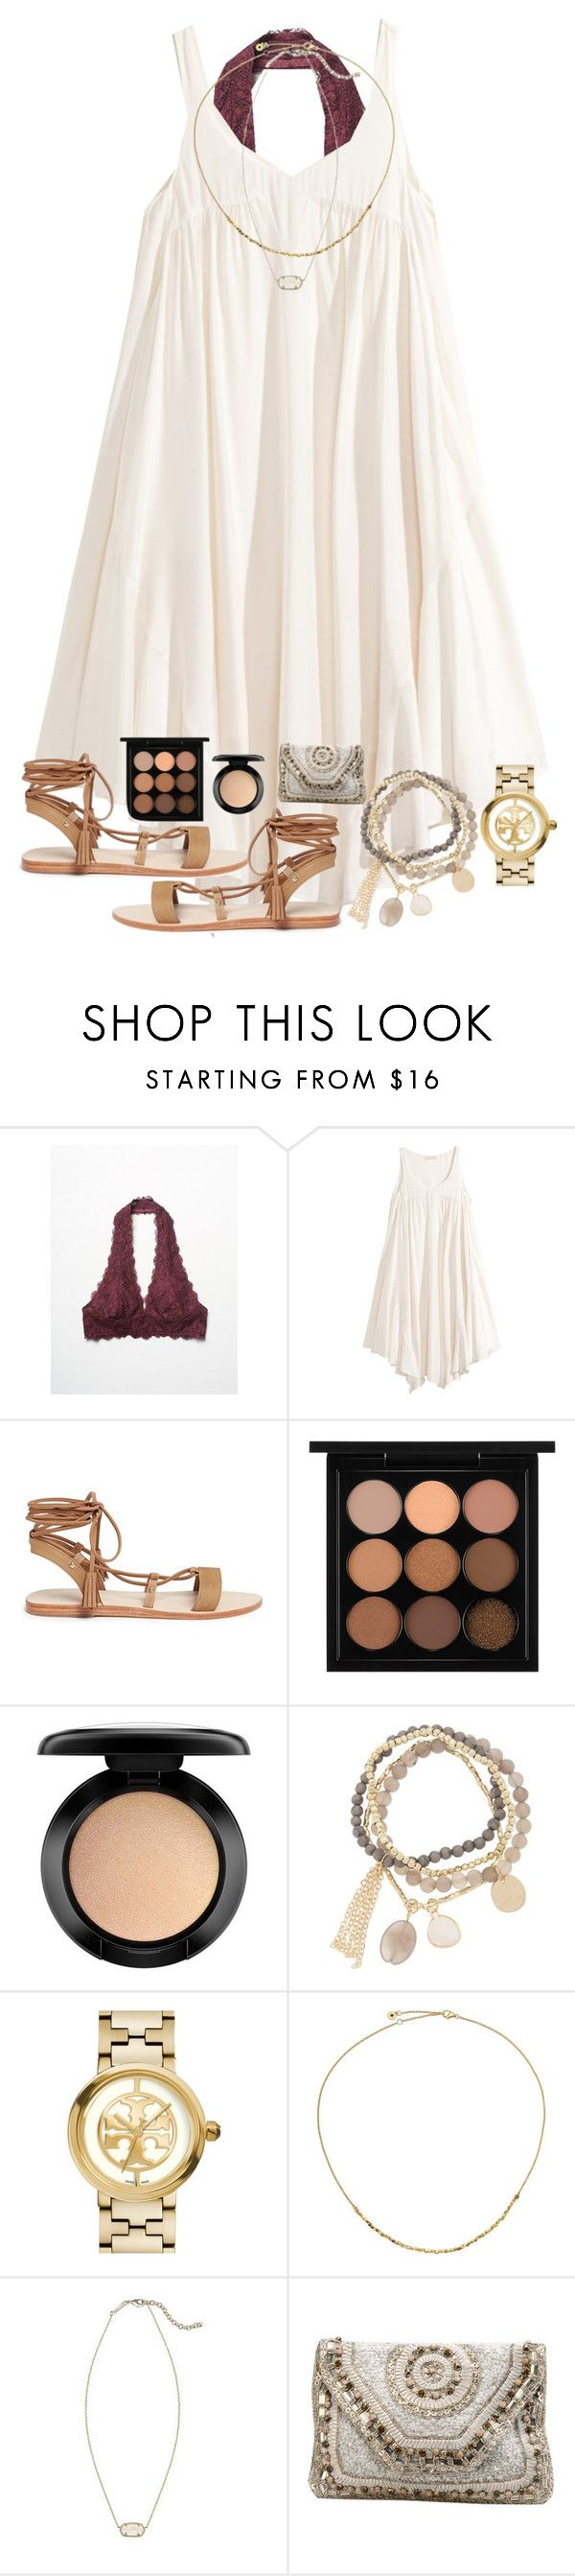 """day 90: happy for fun teachers"" by adellee-b ❤ liked on Polyvore featuring Free People, H&M, Pedder Red, MAC Cosmetics, DesignSix, Tory Burch, Astley Clarke, Kendra Scott and Antik Batik"